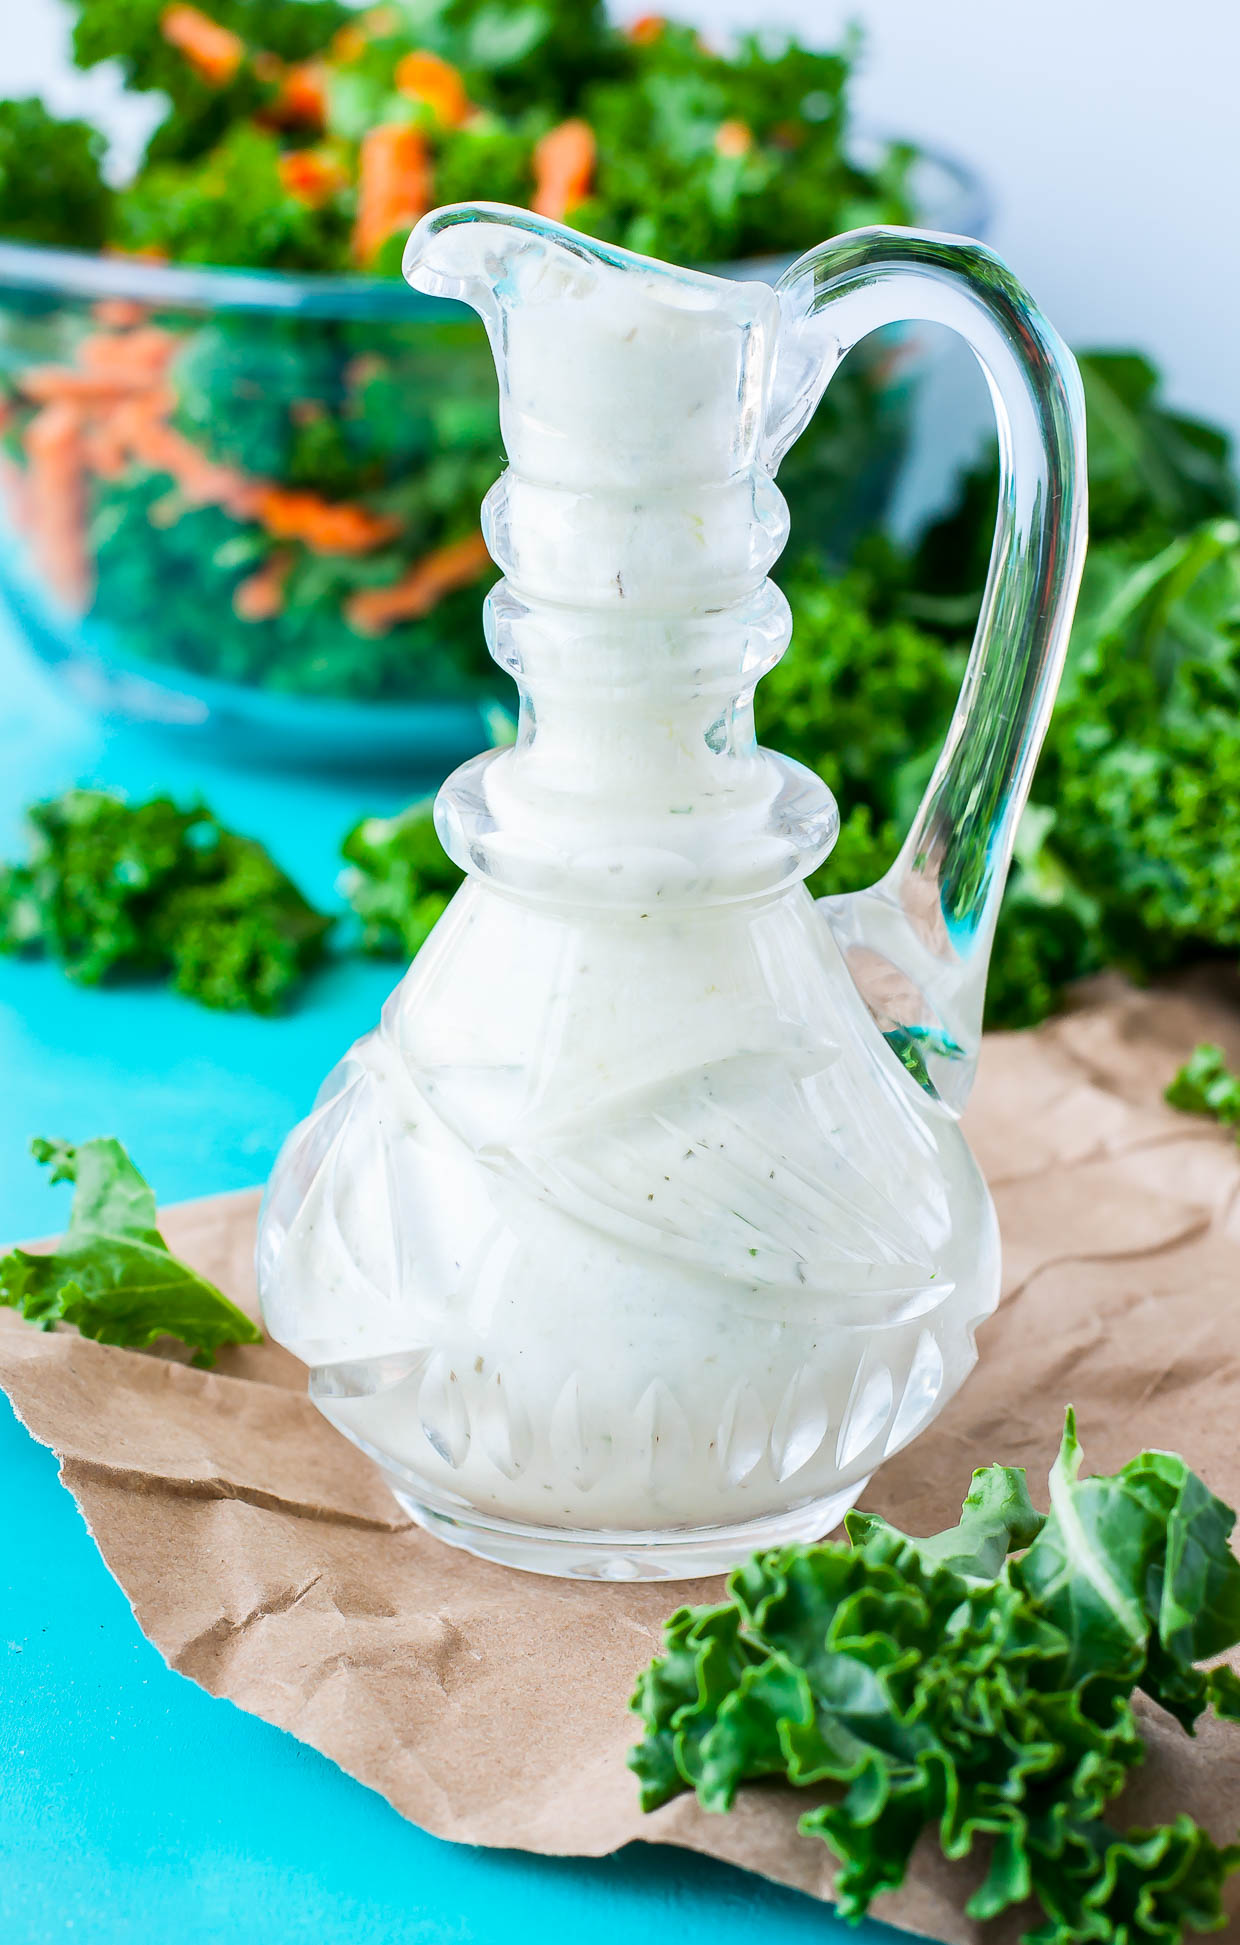 This Creamy Greek Yogurt Feta Dressing is ready to rock your veggies! Uber easy and ready in just 6 minutes, you'll want to pour this dressing on everything from salads to sandwiches.